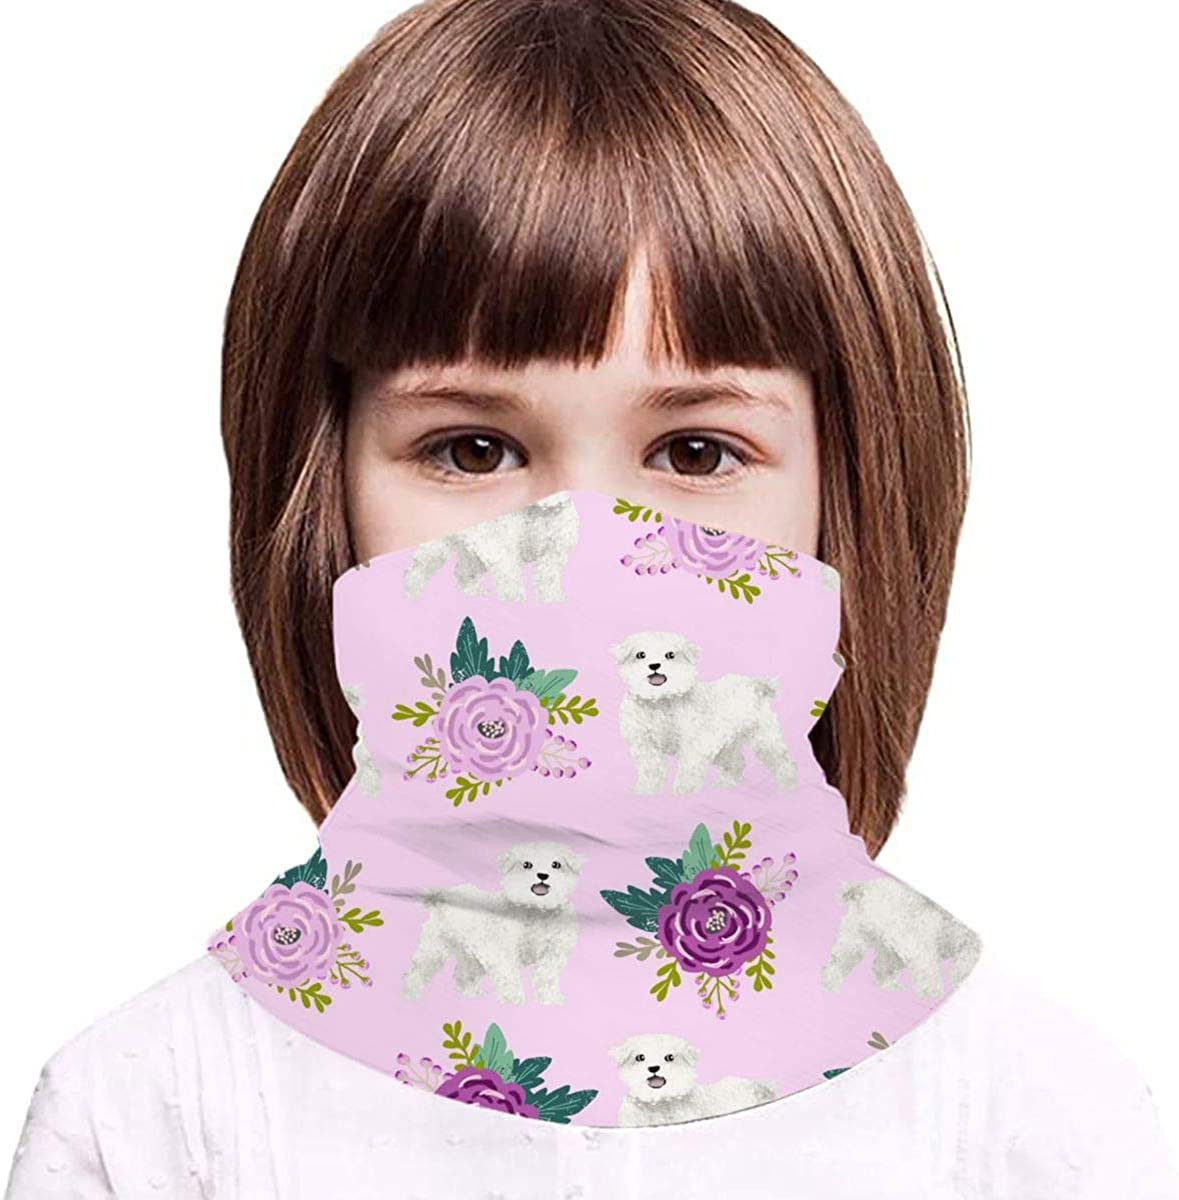 Maltese Floral Dogs And Flowers Design Purple Kids Face Mask Dust Sun UV Protection Neck Gaiter Balaclava Face Cover Scarf Summer Breathable for Cycling Fishing Outdoors